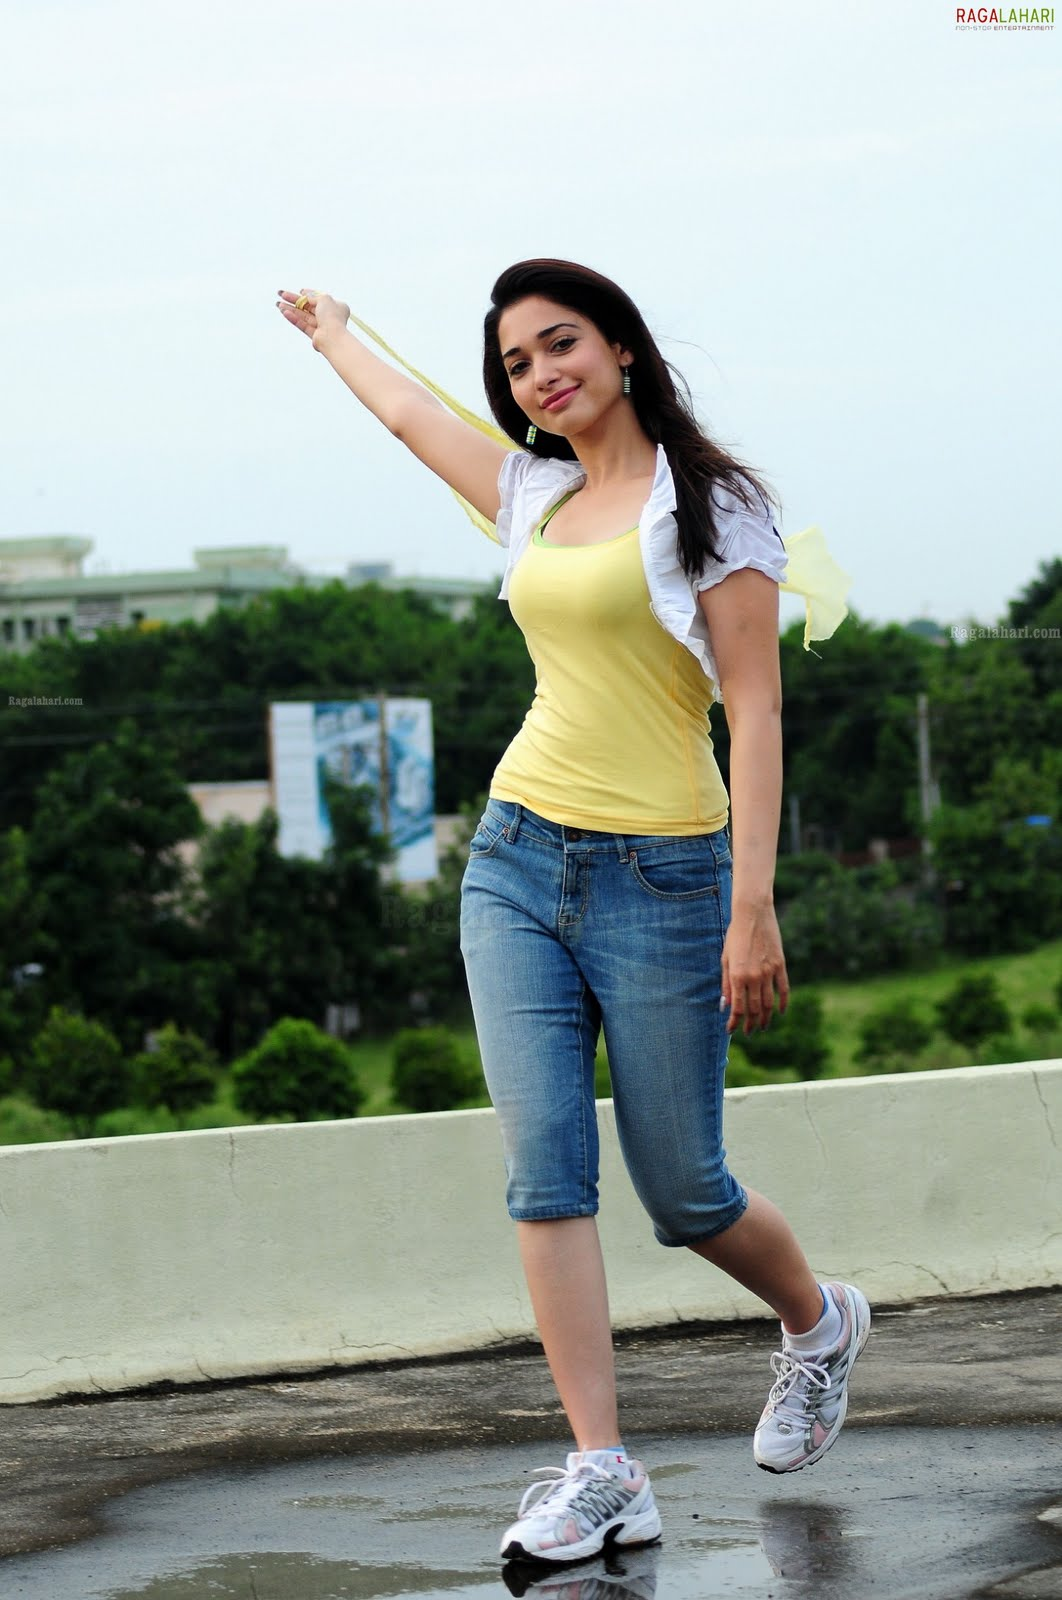 abhishe kism beautiful pictures of tamanna wearing